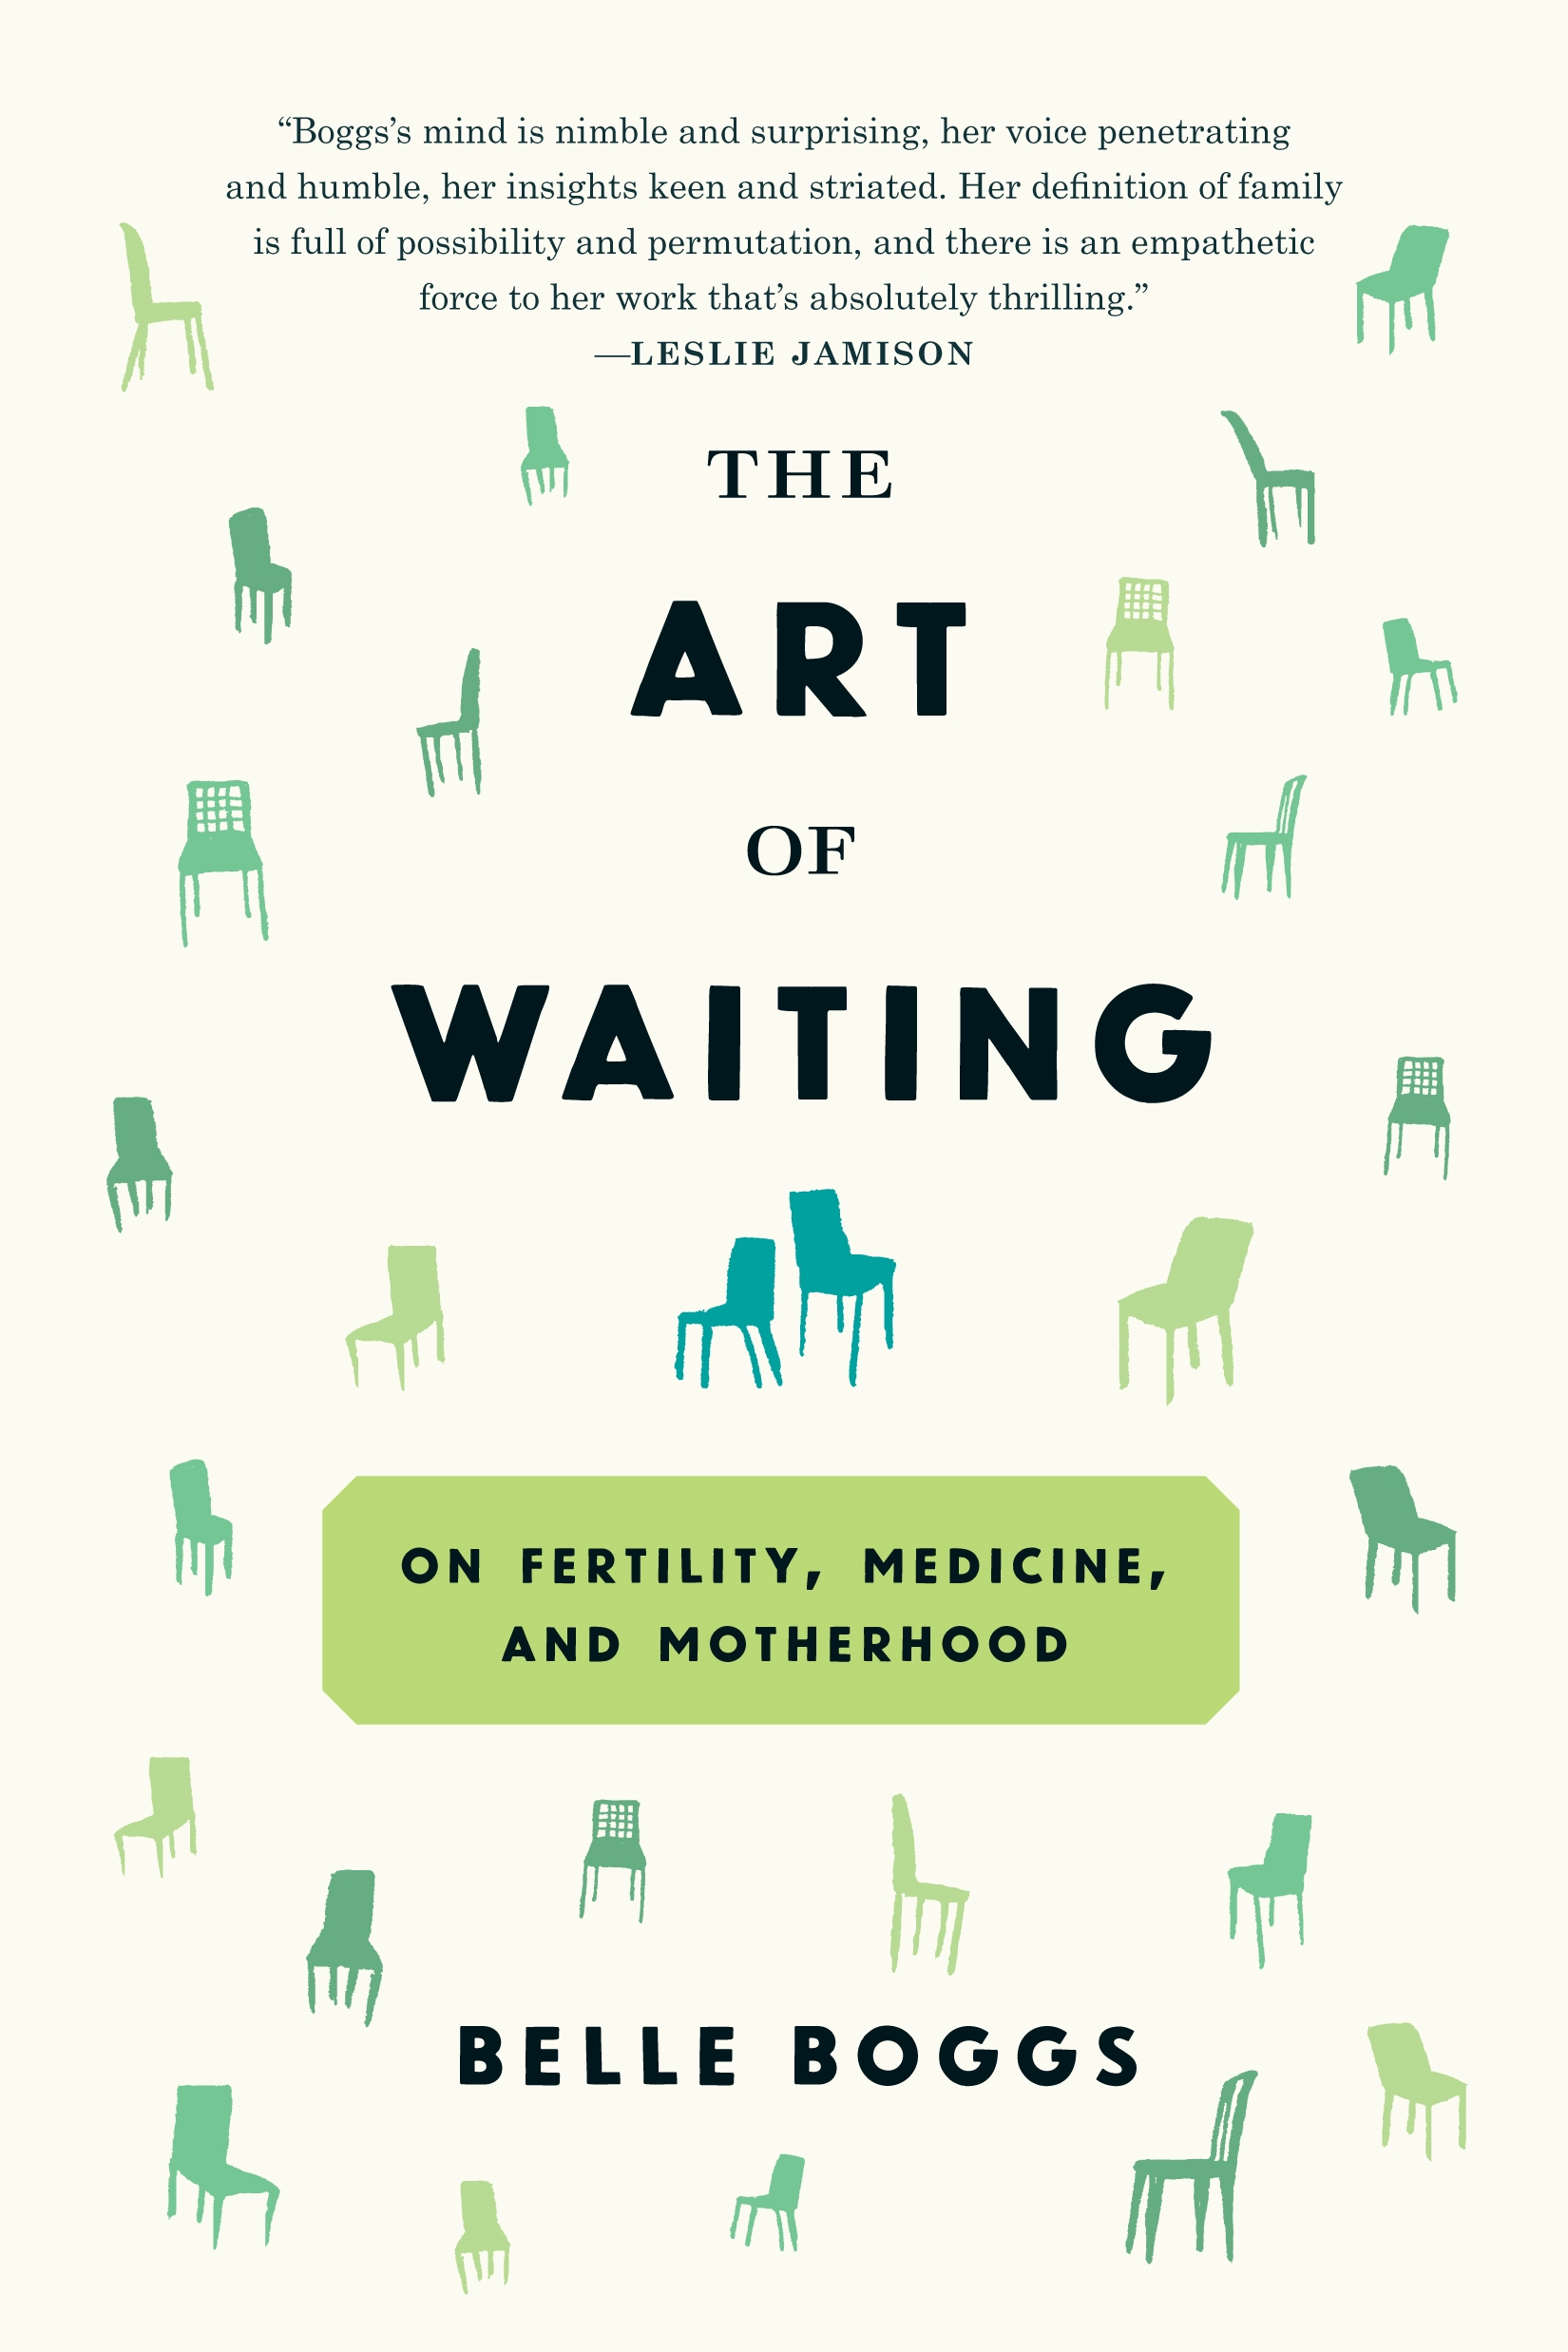 The Art of Waiting On Fertility, Medicine, and Motherhood